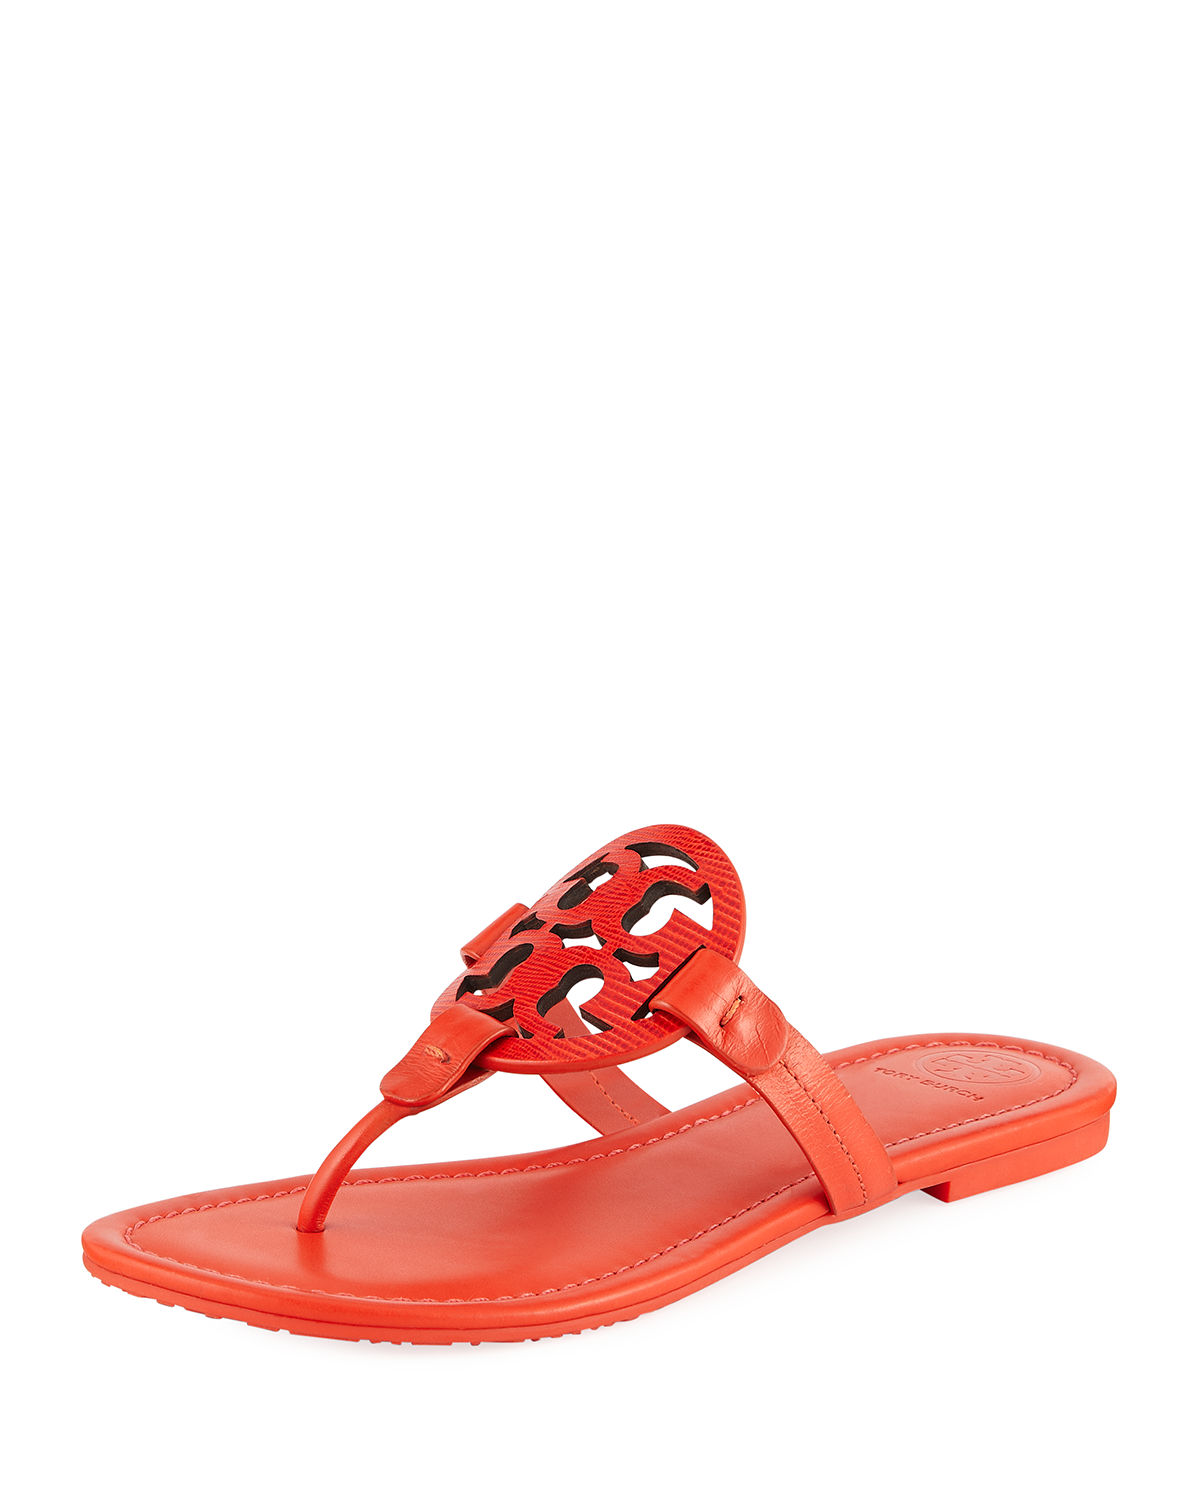 de4d316e9447 Tory Burch Miller Logo Flat Leather Sandals In Bright Pomander ...